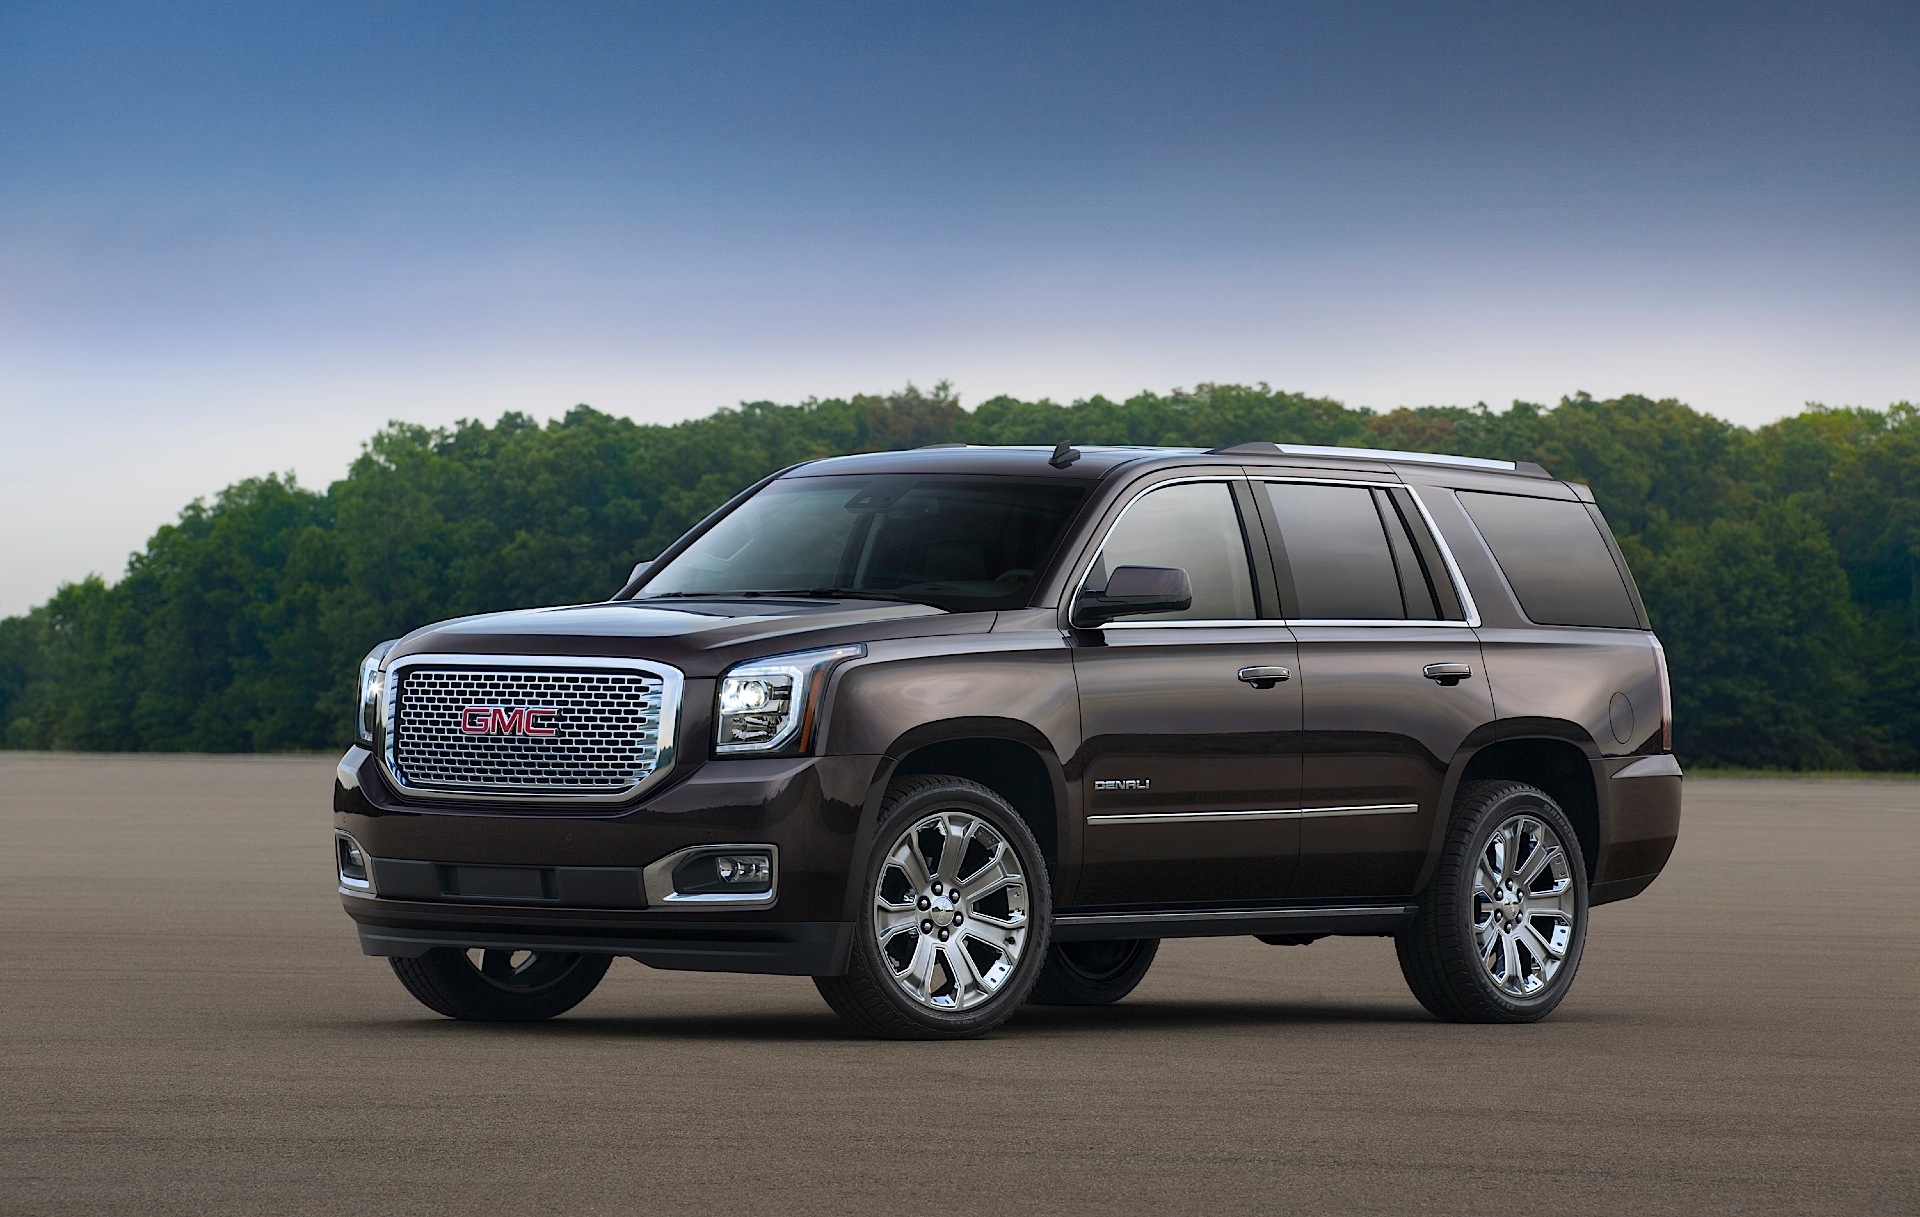 rs gmc reinvents denali bed roadshow video videos tahoe sierra the